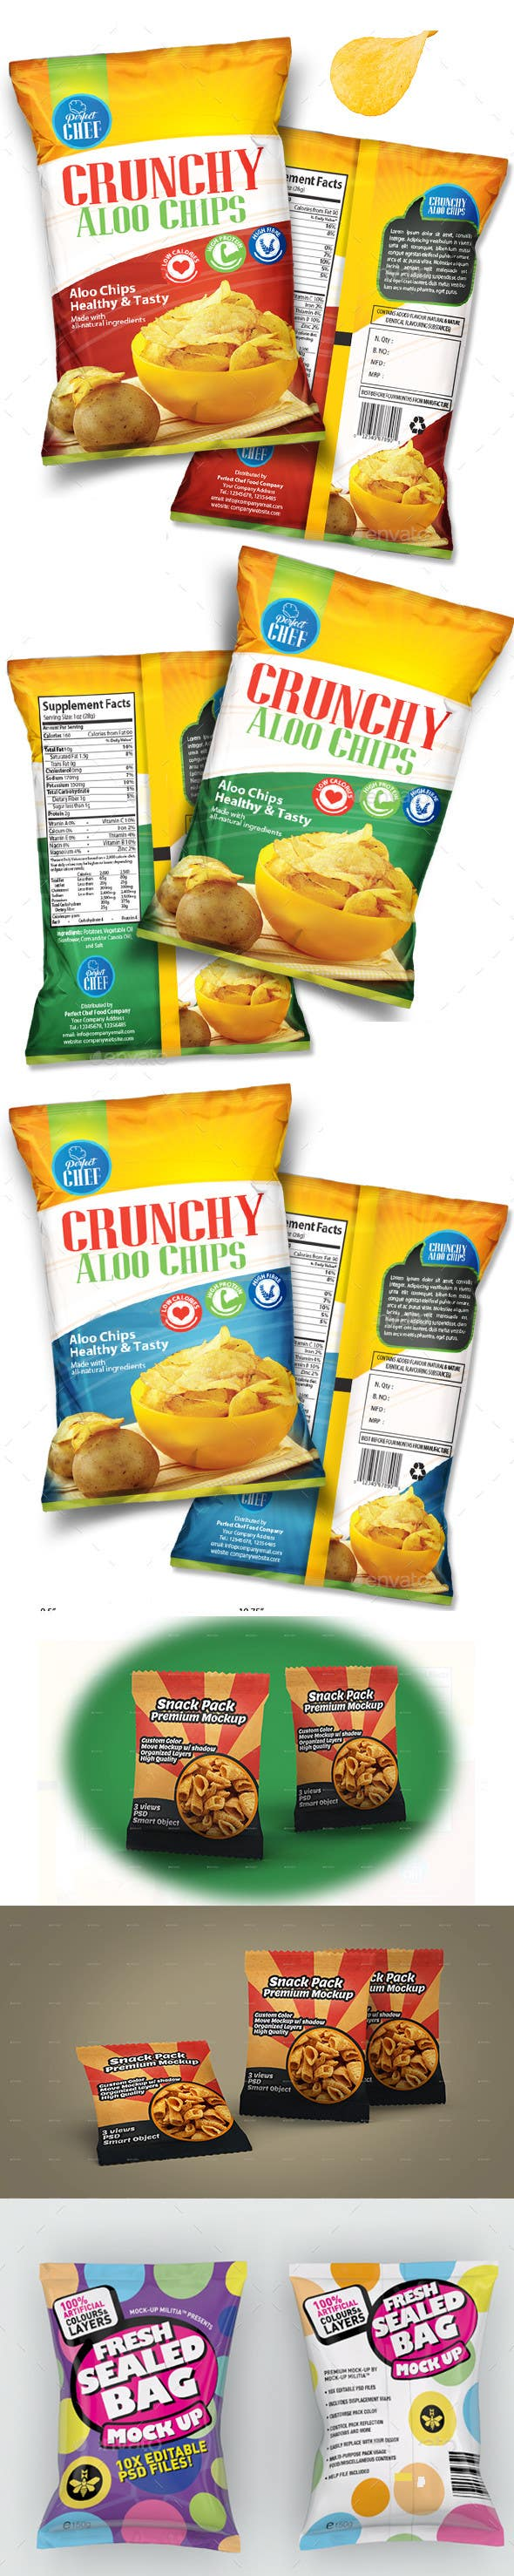 Proposition n°1 du concours Design Snack Food Packaging for nuts and chips -- 2